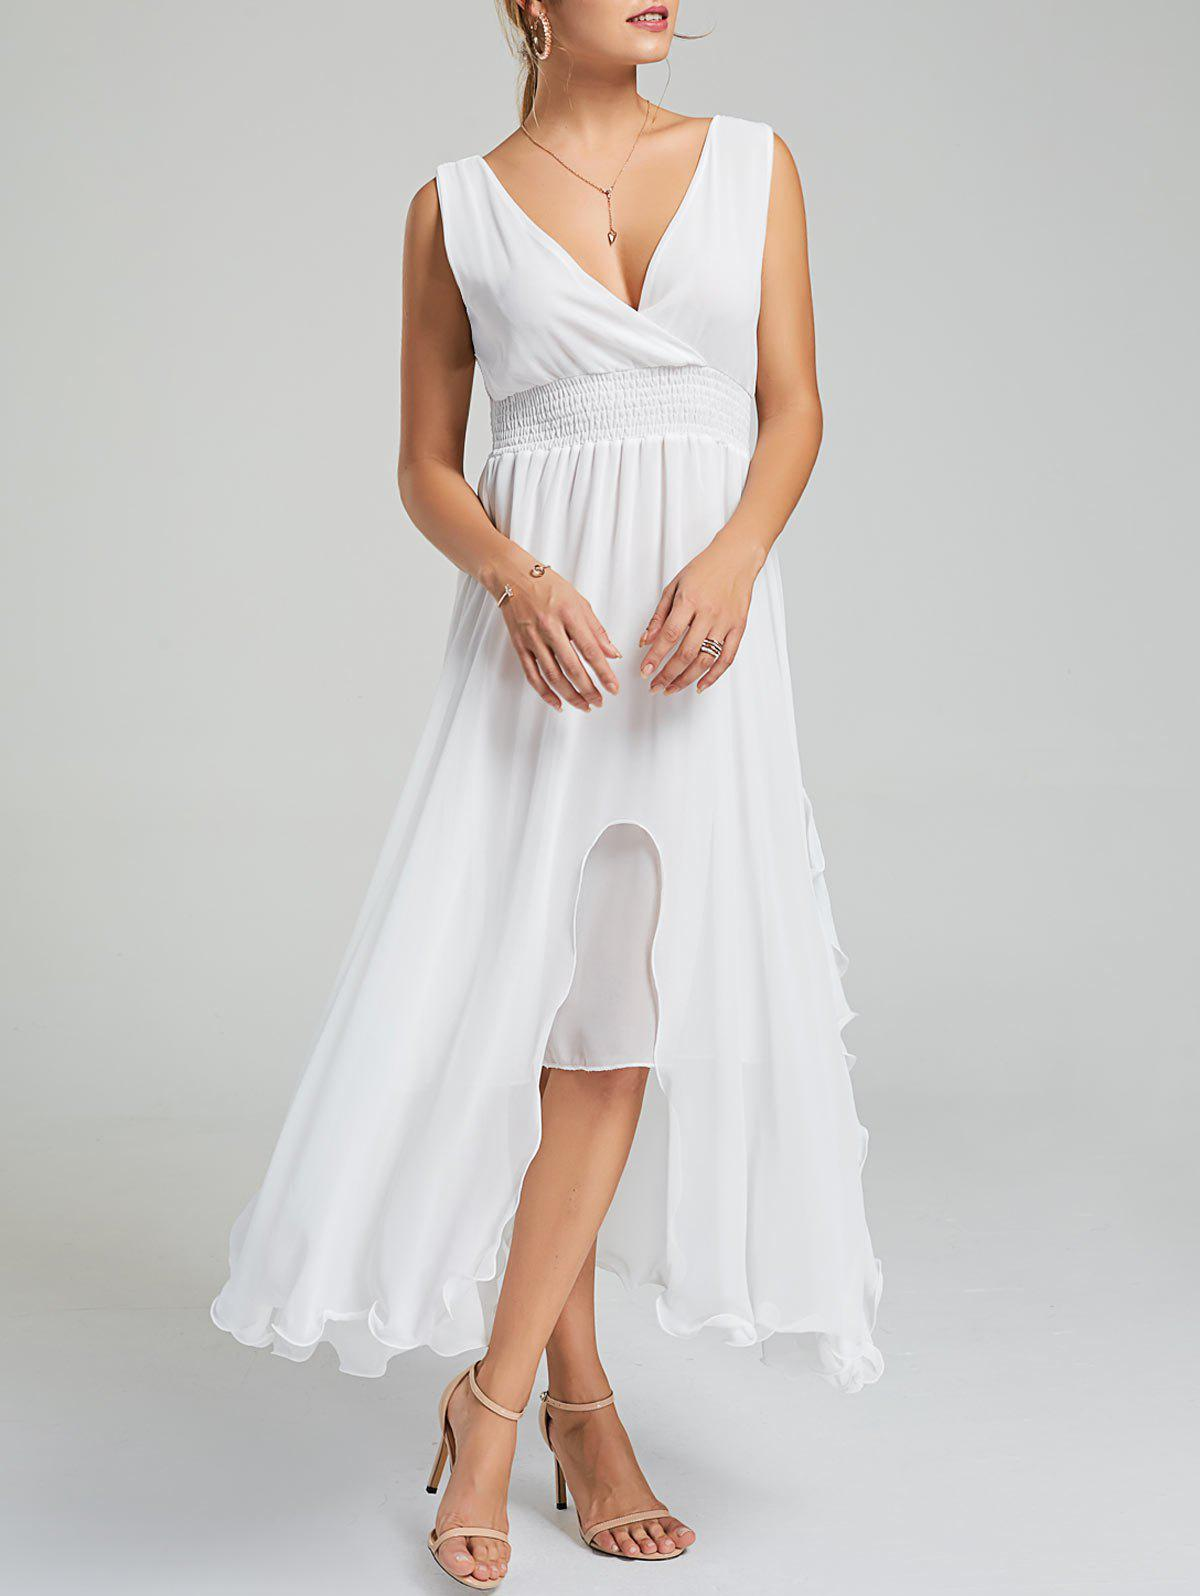 Empire Waist Chiffon Ruffle Dress - Blanc L